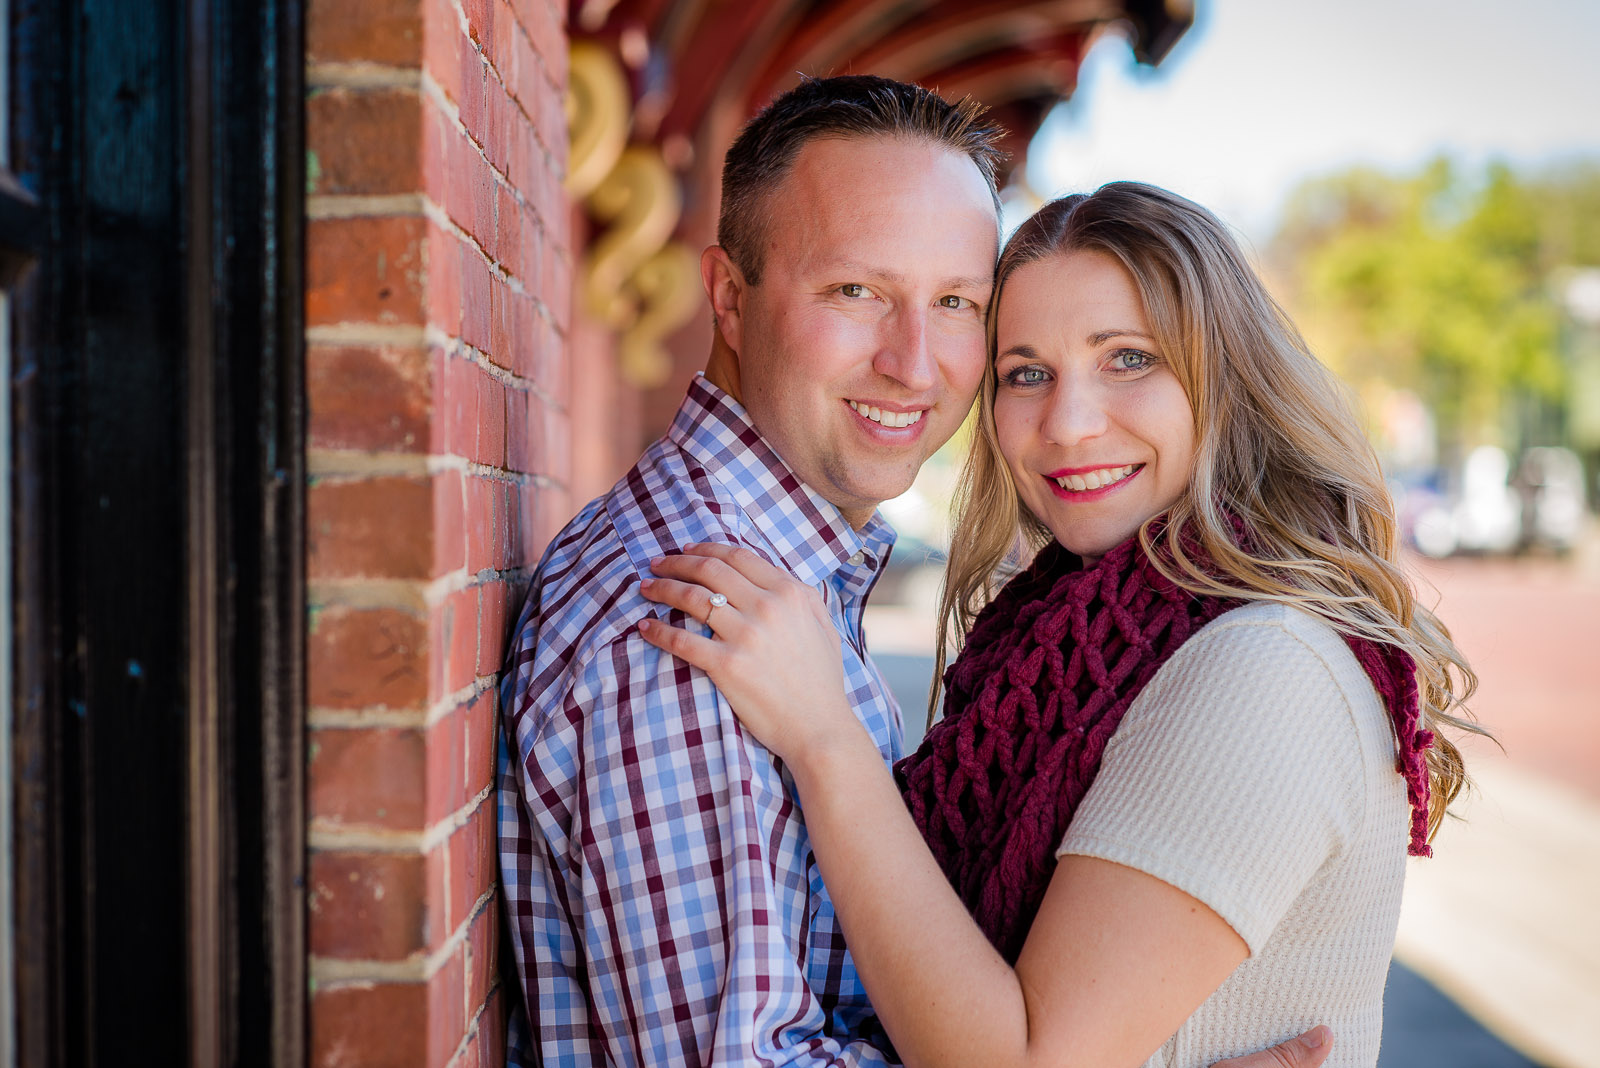 Eric_and_Christy_Photography_Blog_Megan_Nate_Engagement-1